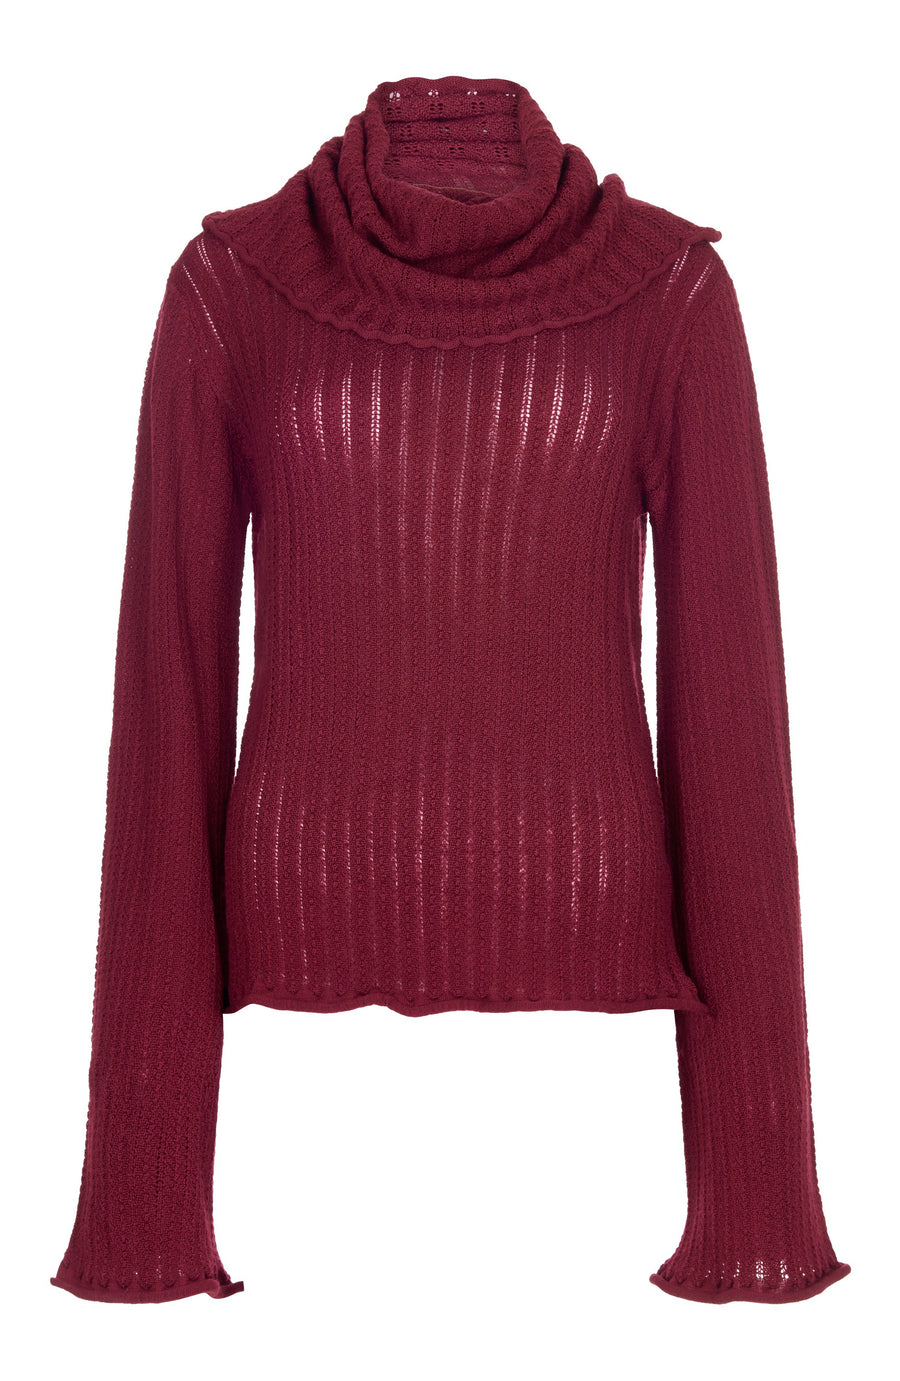 Laya Wool Jumper - Issara Fairtrade